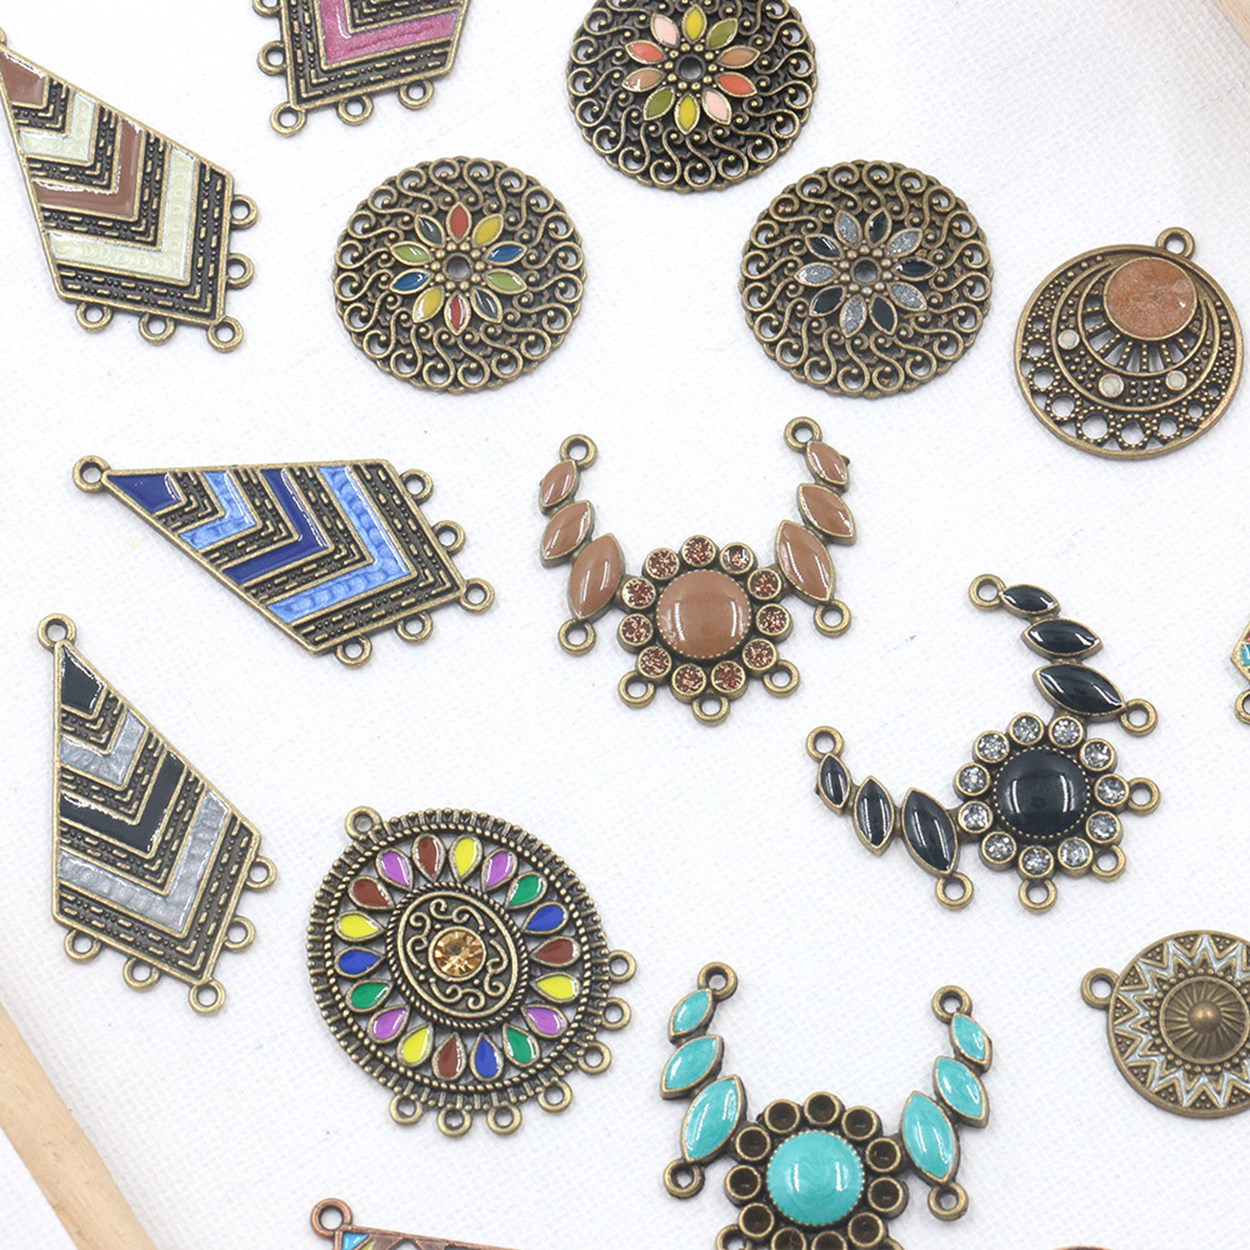 Enamel Metal Charms Earring Chandelier Connectors Drops Bails Wholesale Lot for Jewelry Making DIY Findings